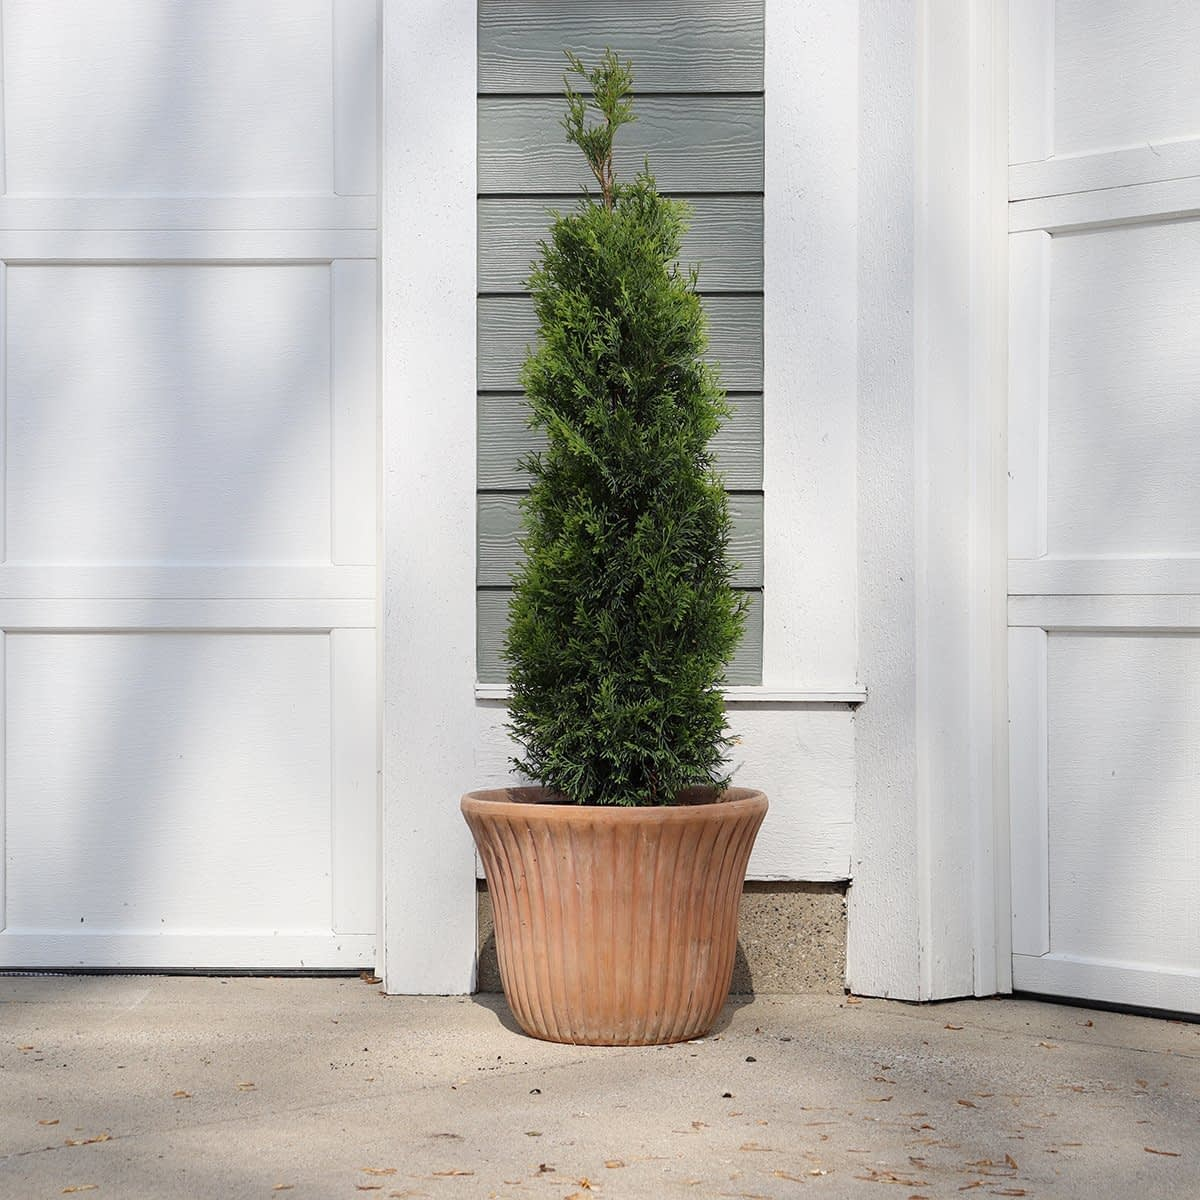 A specimen of North Pole arborvitae planted in a decorative clay container in front of a garage.